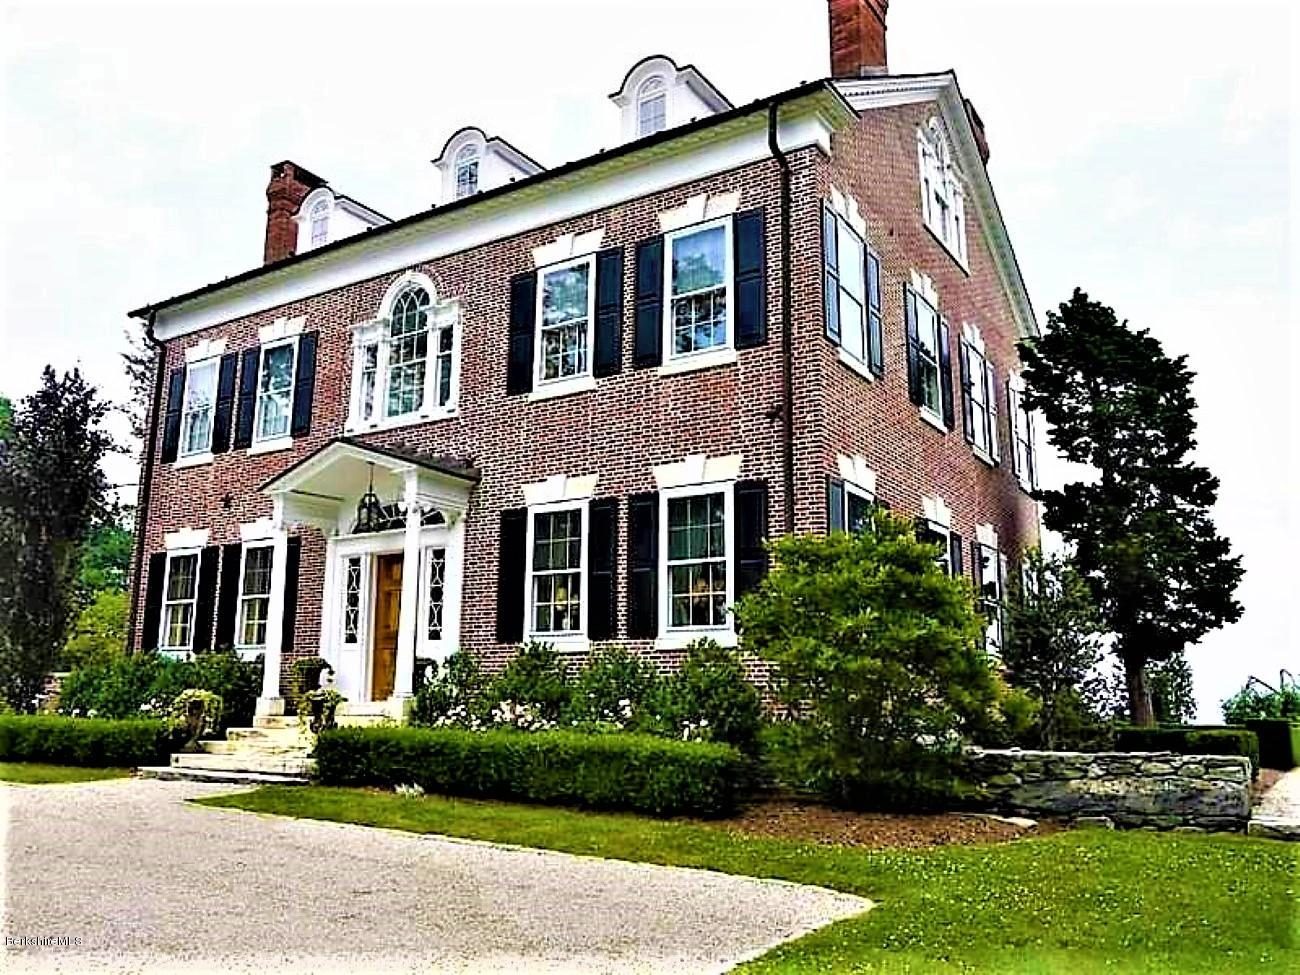 12 East Street North, Connecticut Towns, Connecticut 99999, 6 Bedrooms Bedrooms, 14 Rooms Rooms,4 BathroomsBathrooms,Residential,For Sale,East Street North,230348